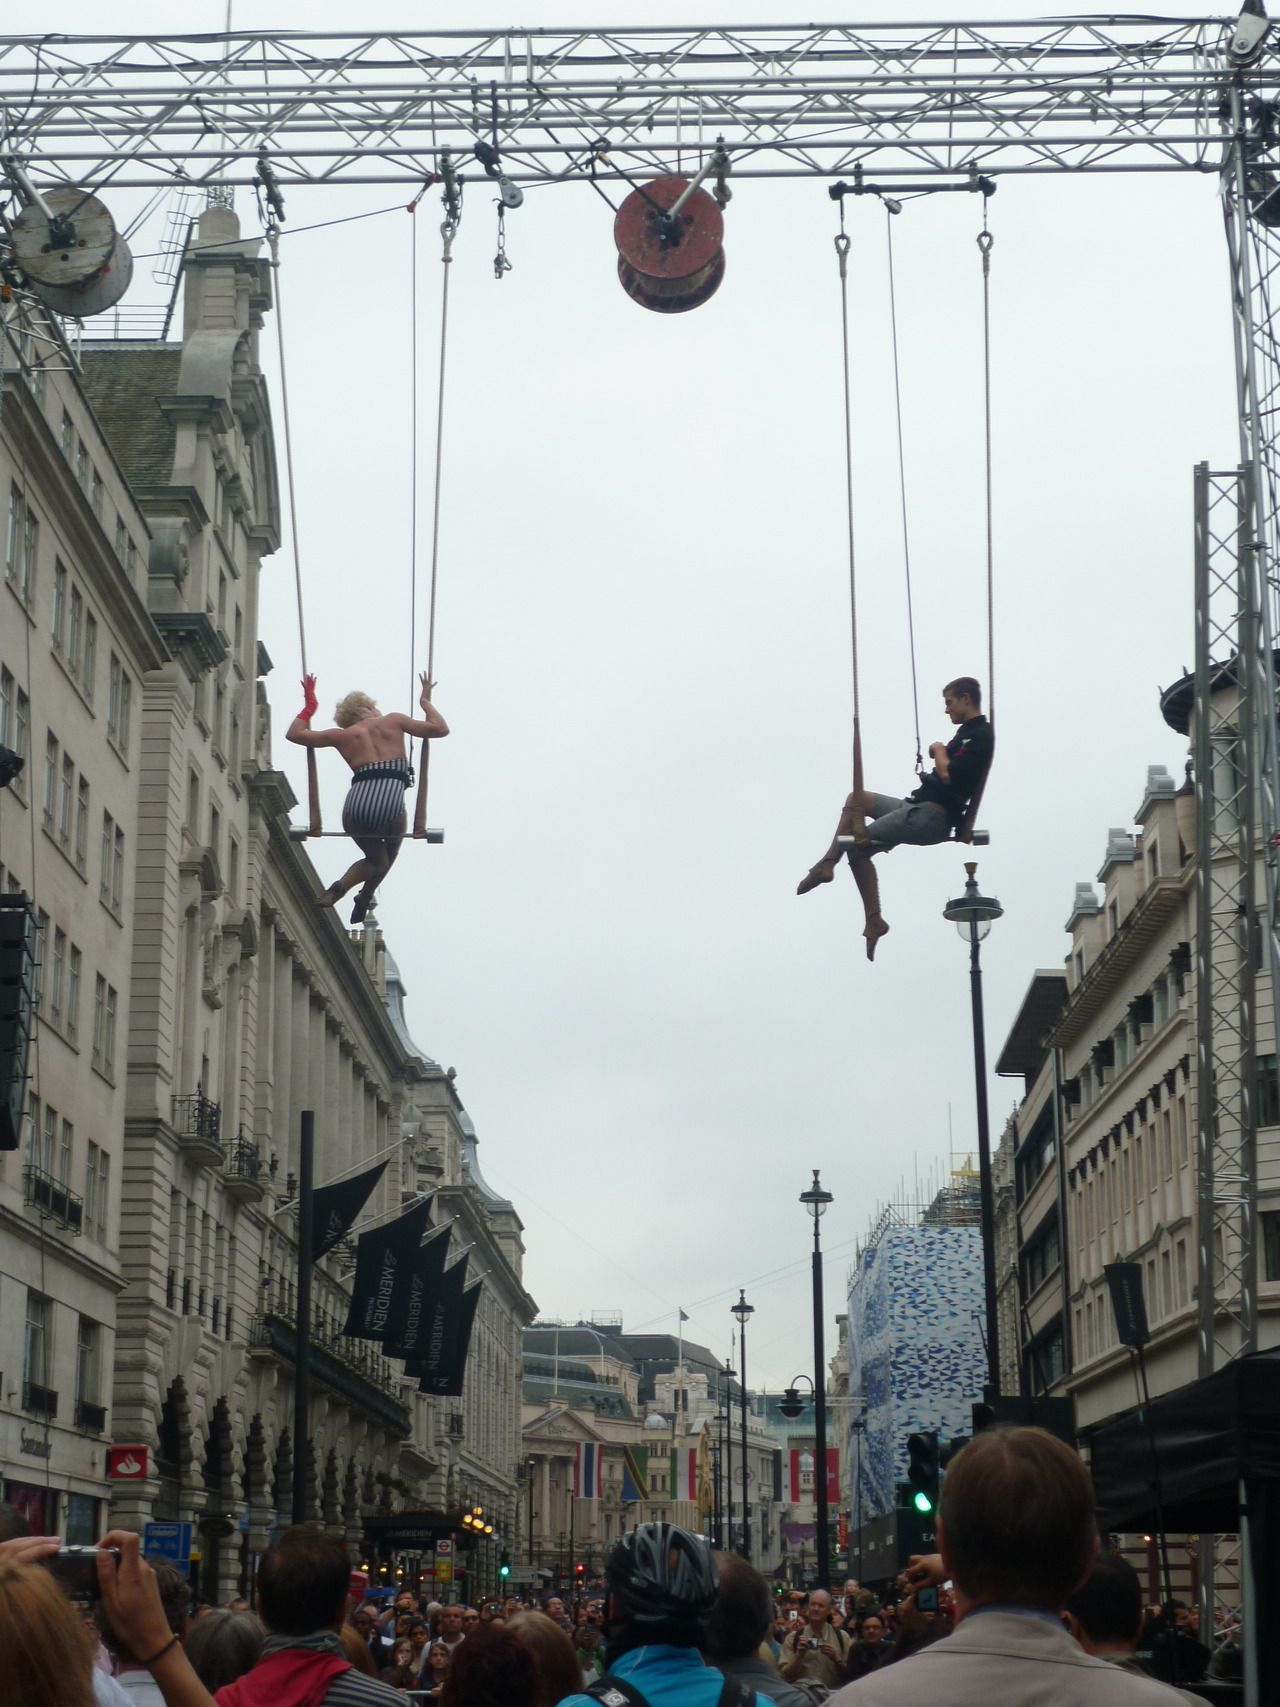 Piccadilli Circus Circus! September 2012 by Melancholic Identities